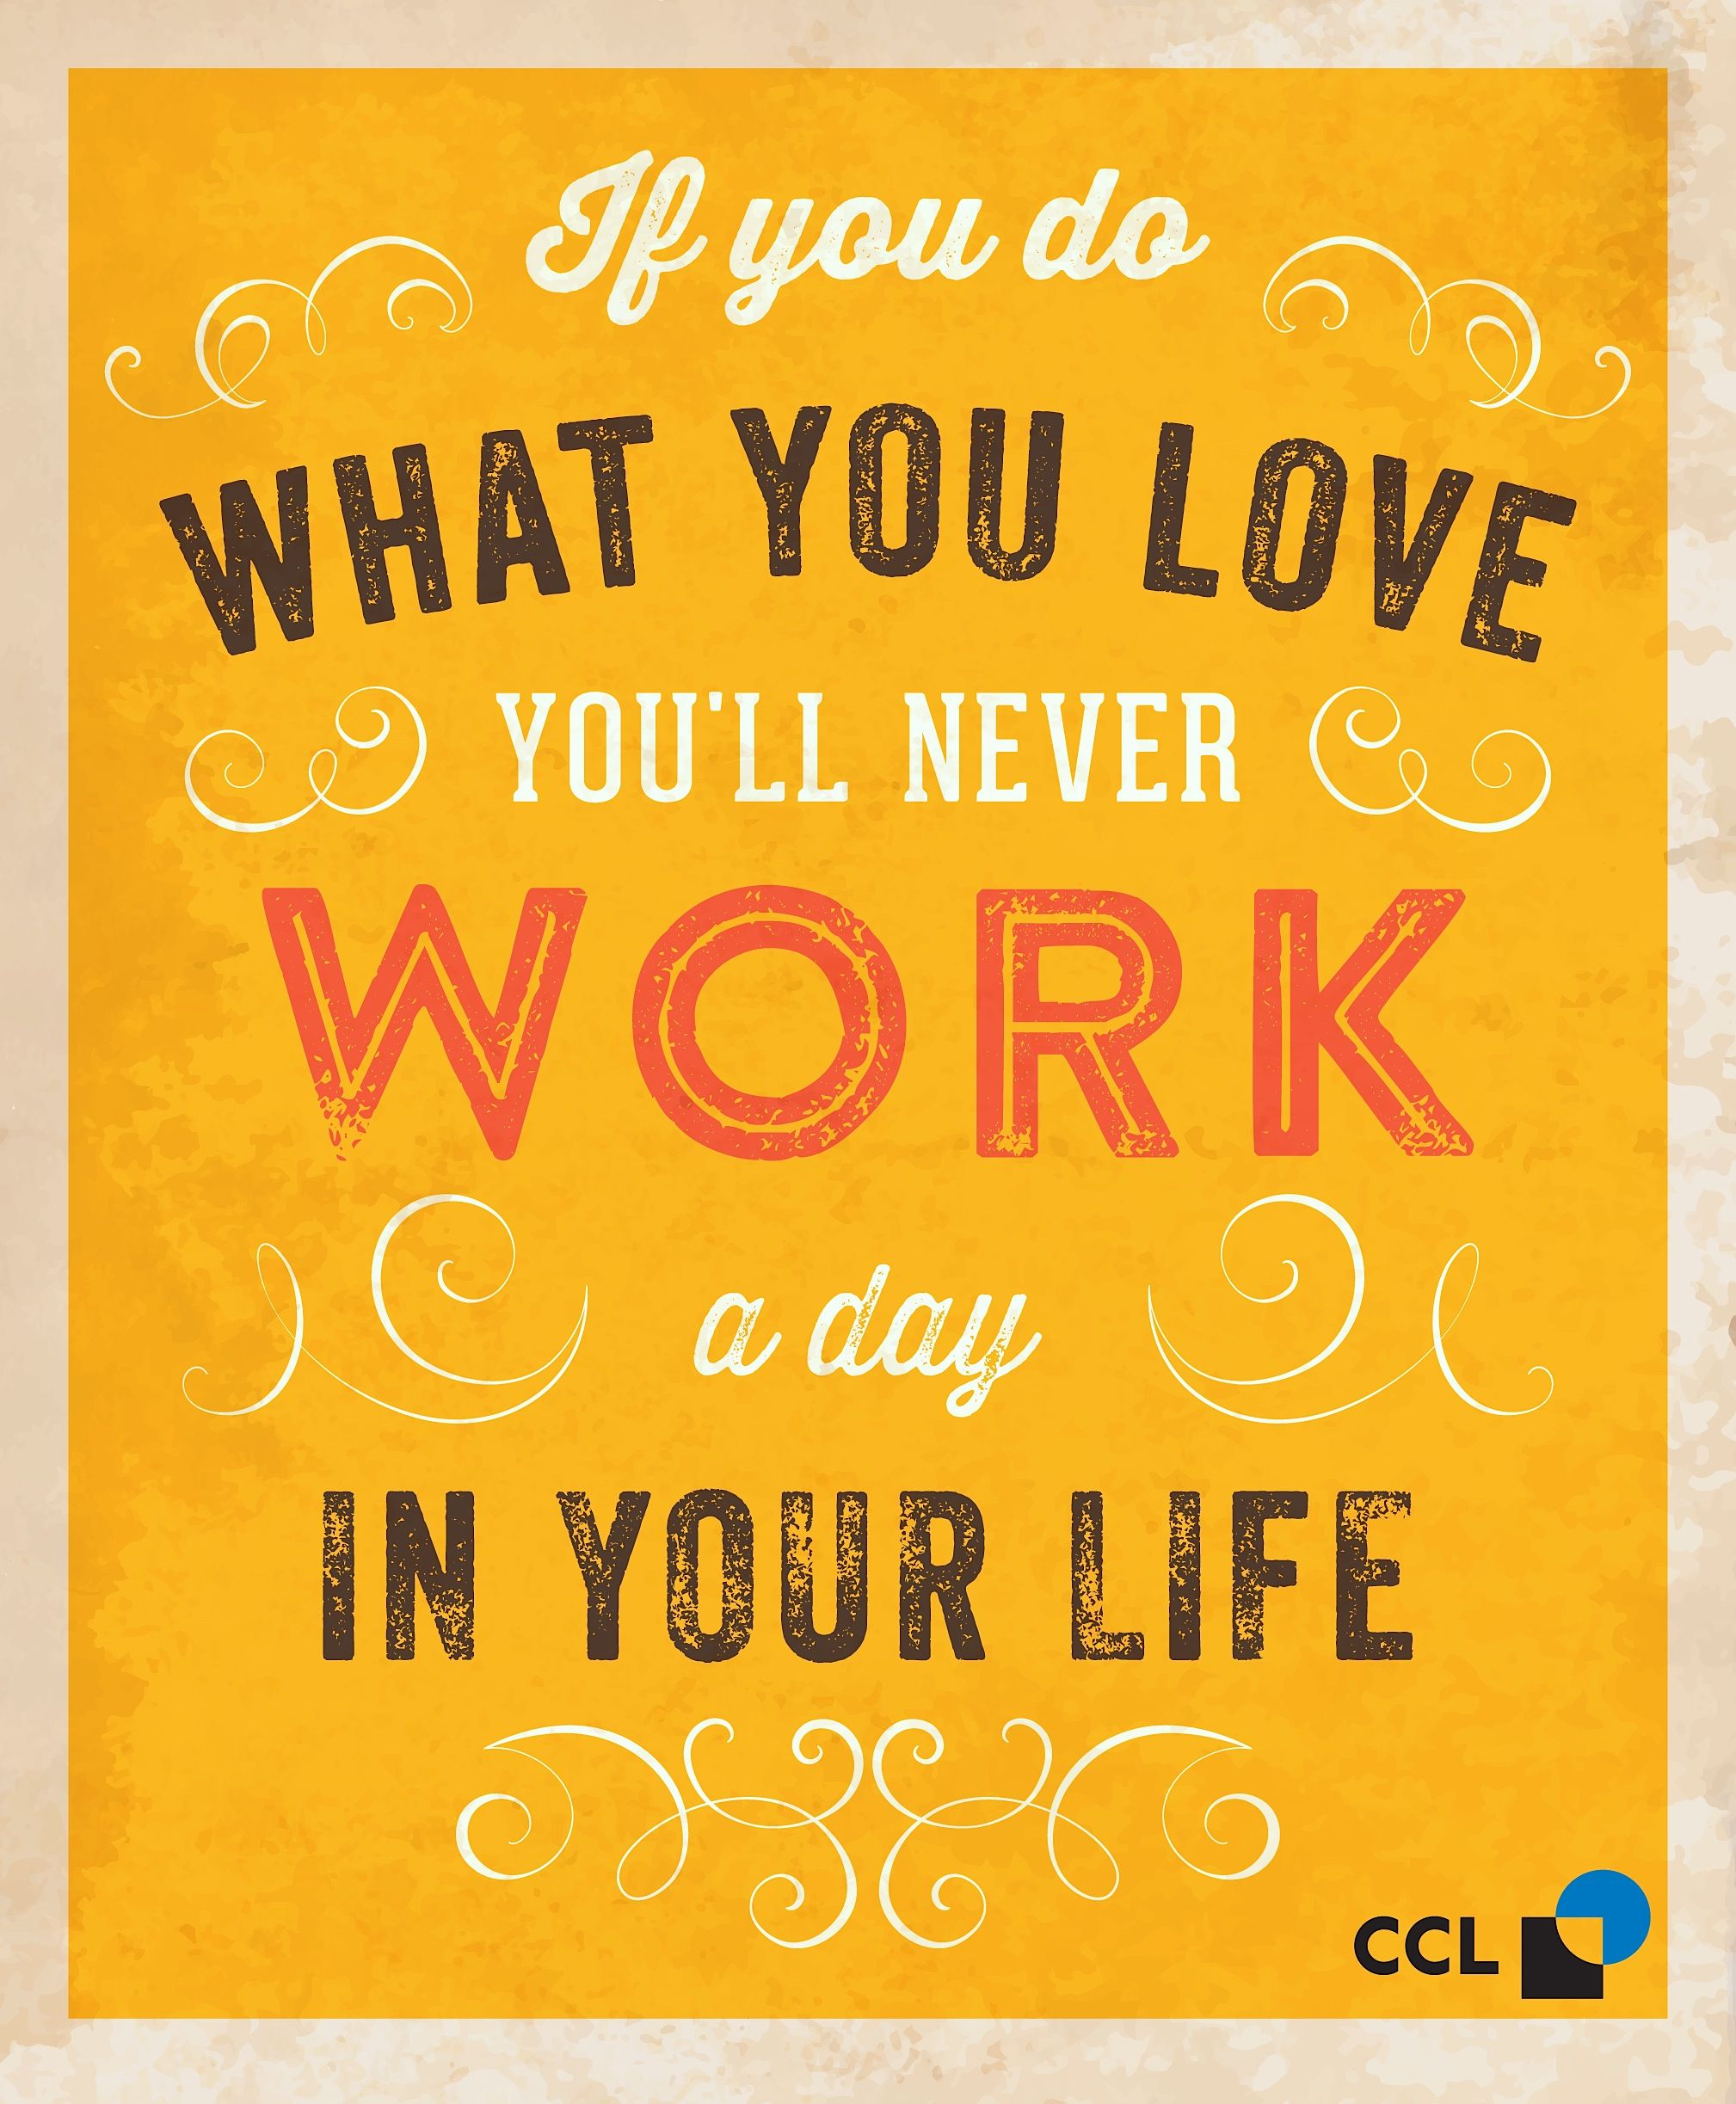 Love Sucks Quotes Job Work Inspire Quotes Phrases Thoughts  Inspire Quotes